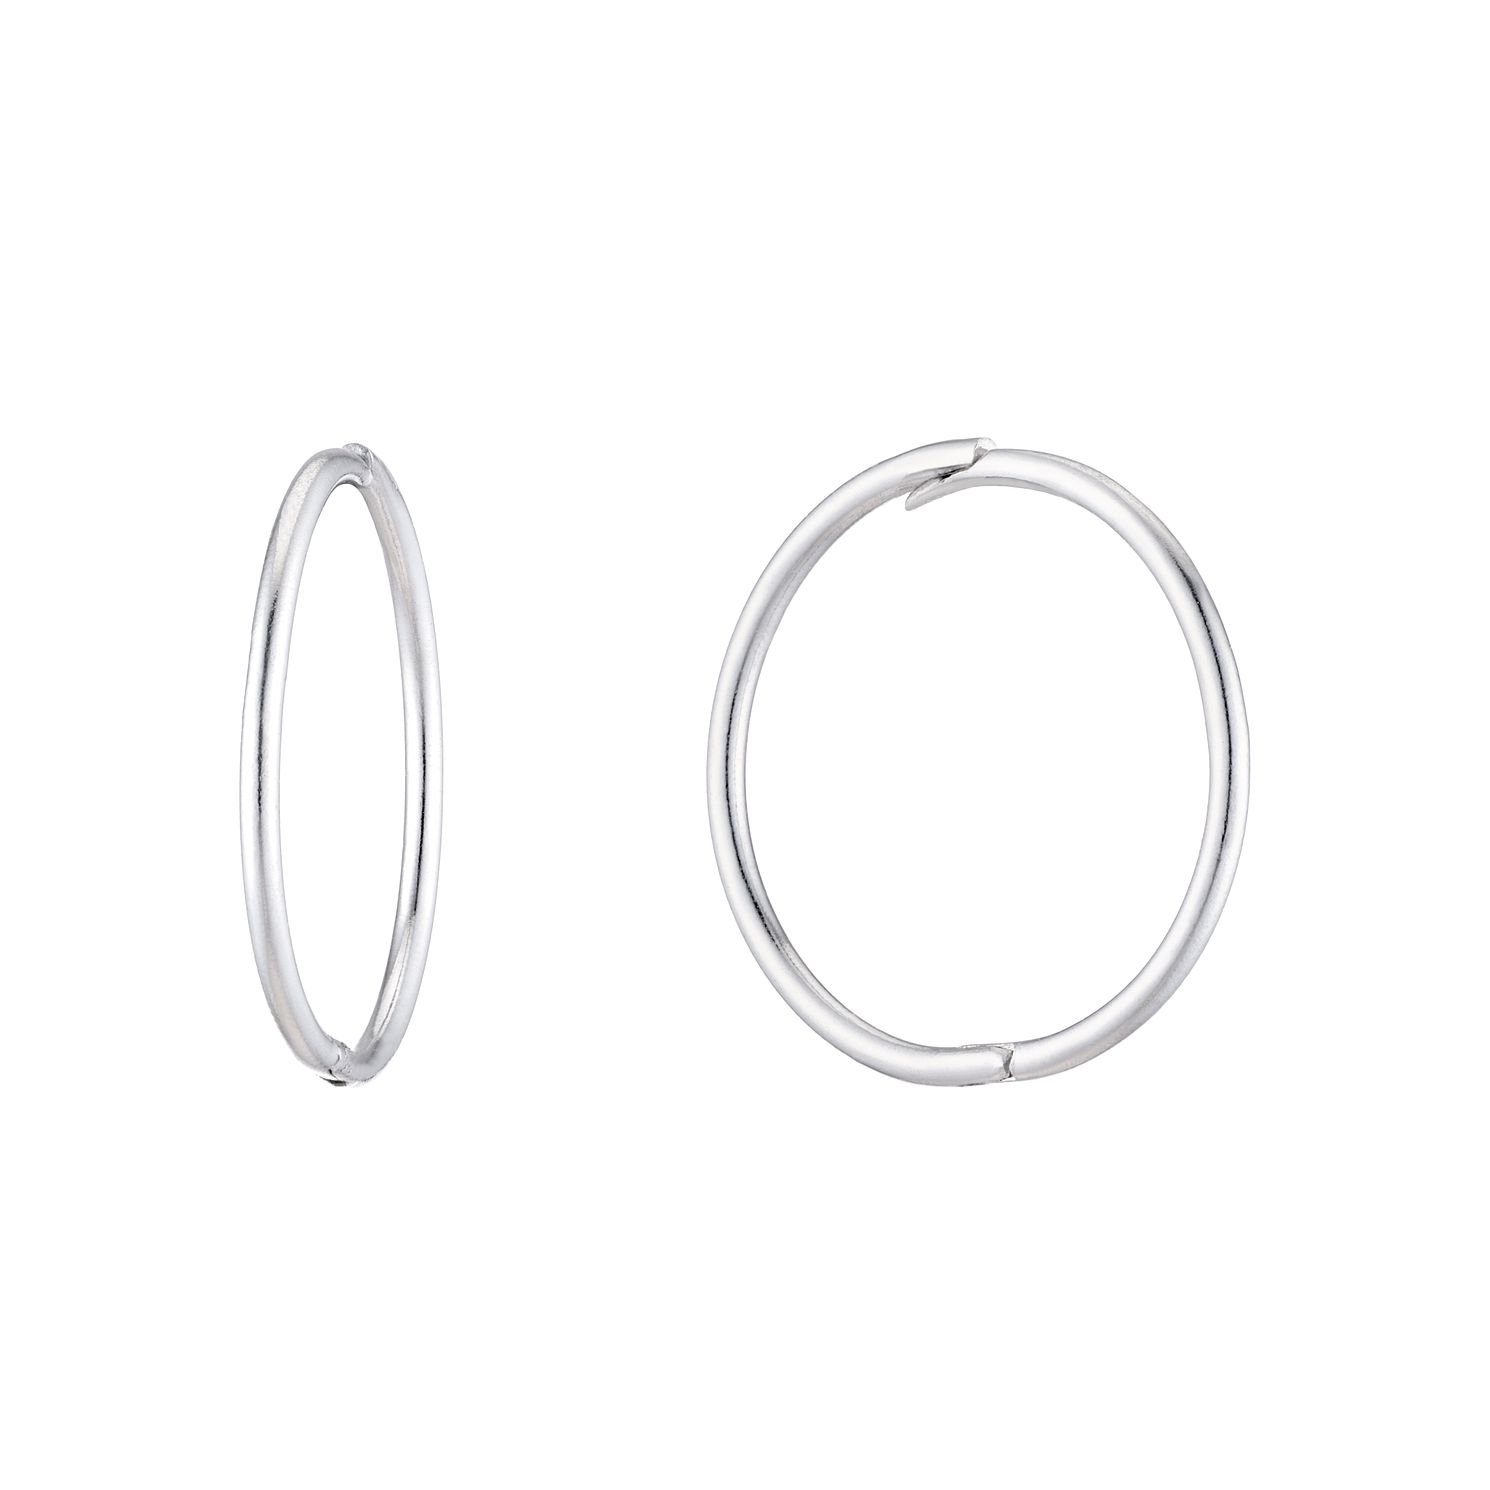 9ct White Gold Hinged 12mm Sleeper Earrings - Product number 5087155